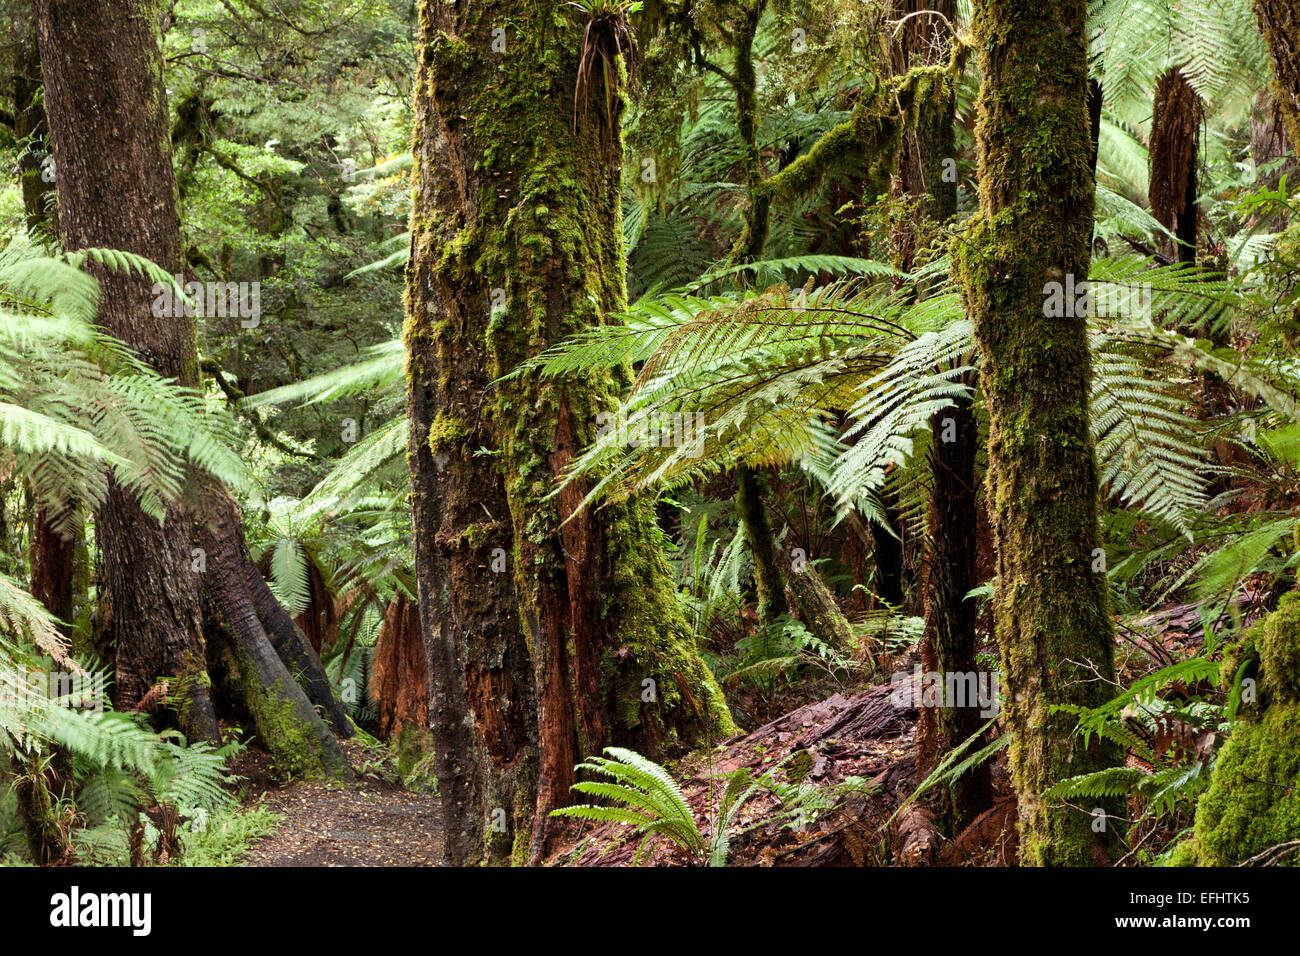 Primeval forest with tree ferns and tree trunks covered in moss, Lake Waikaremoana, Te Urewera National Park, Children - Stock Image